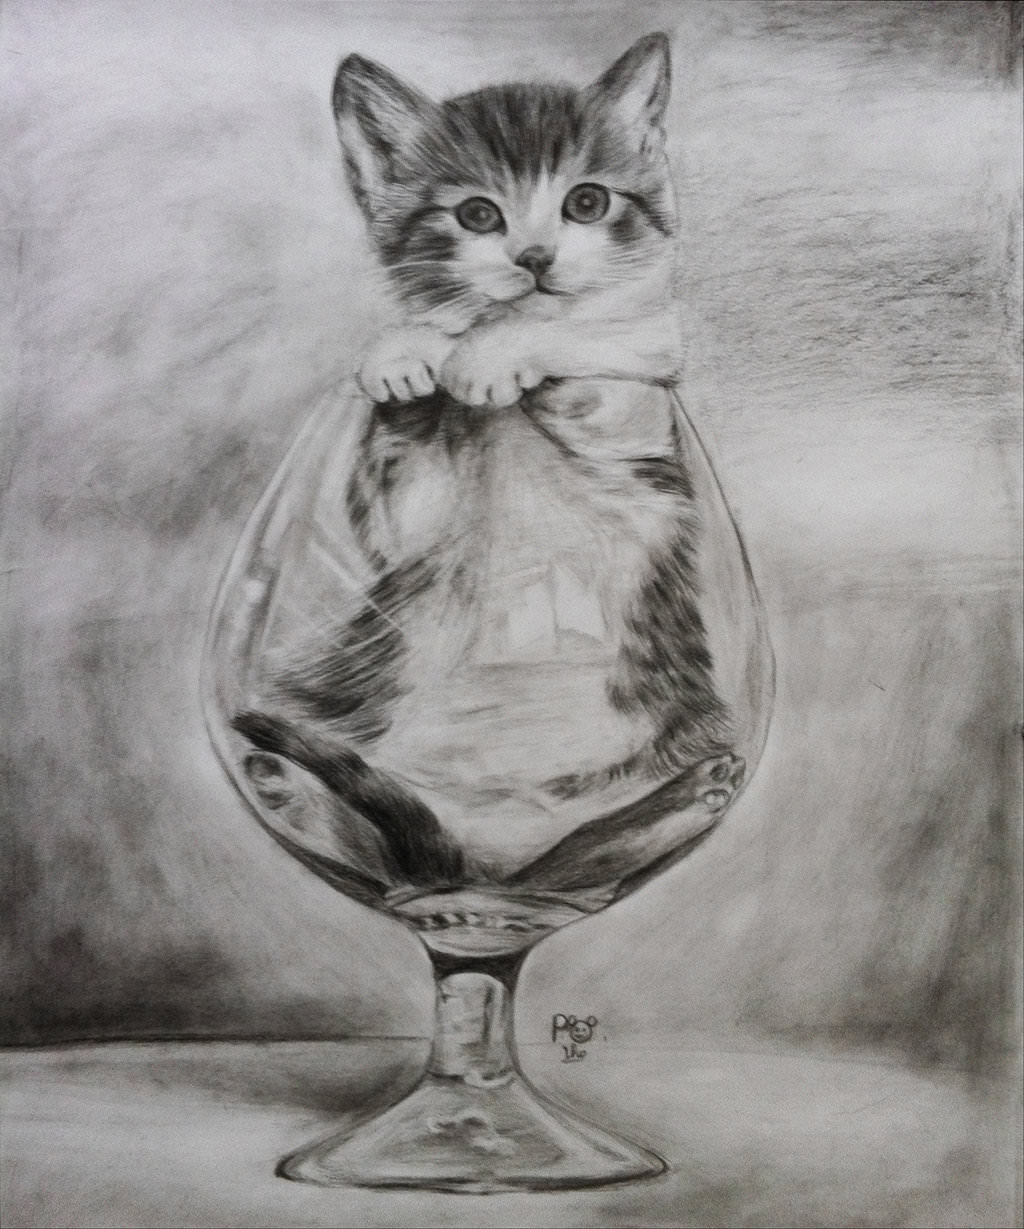 Cat in glass pencil drawing